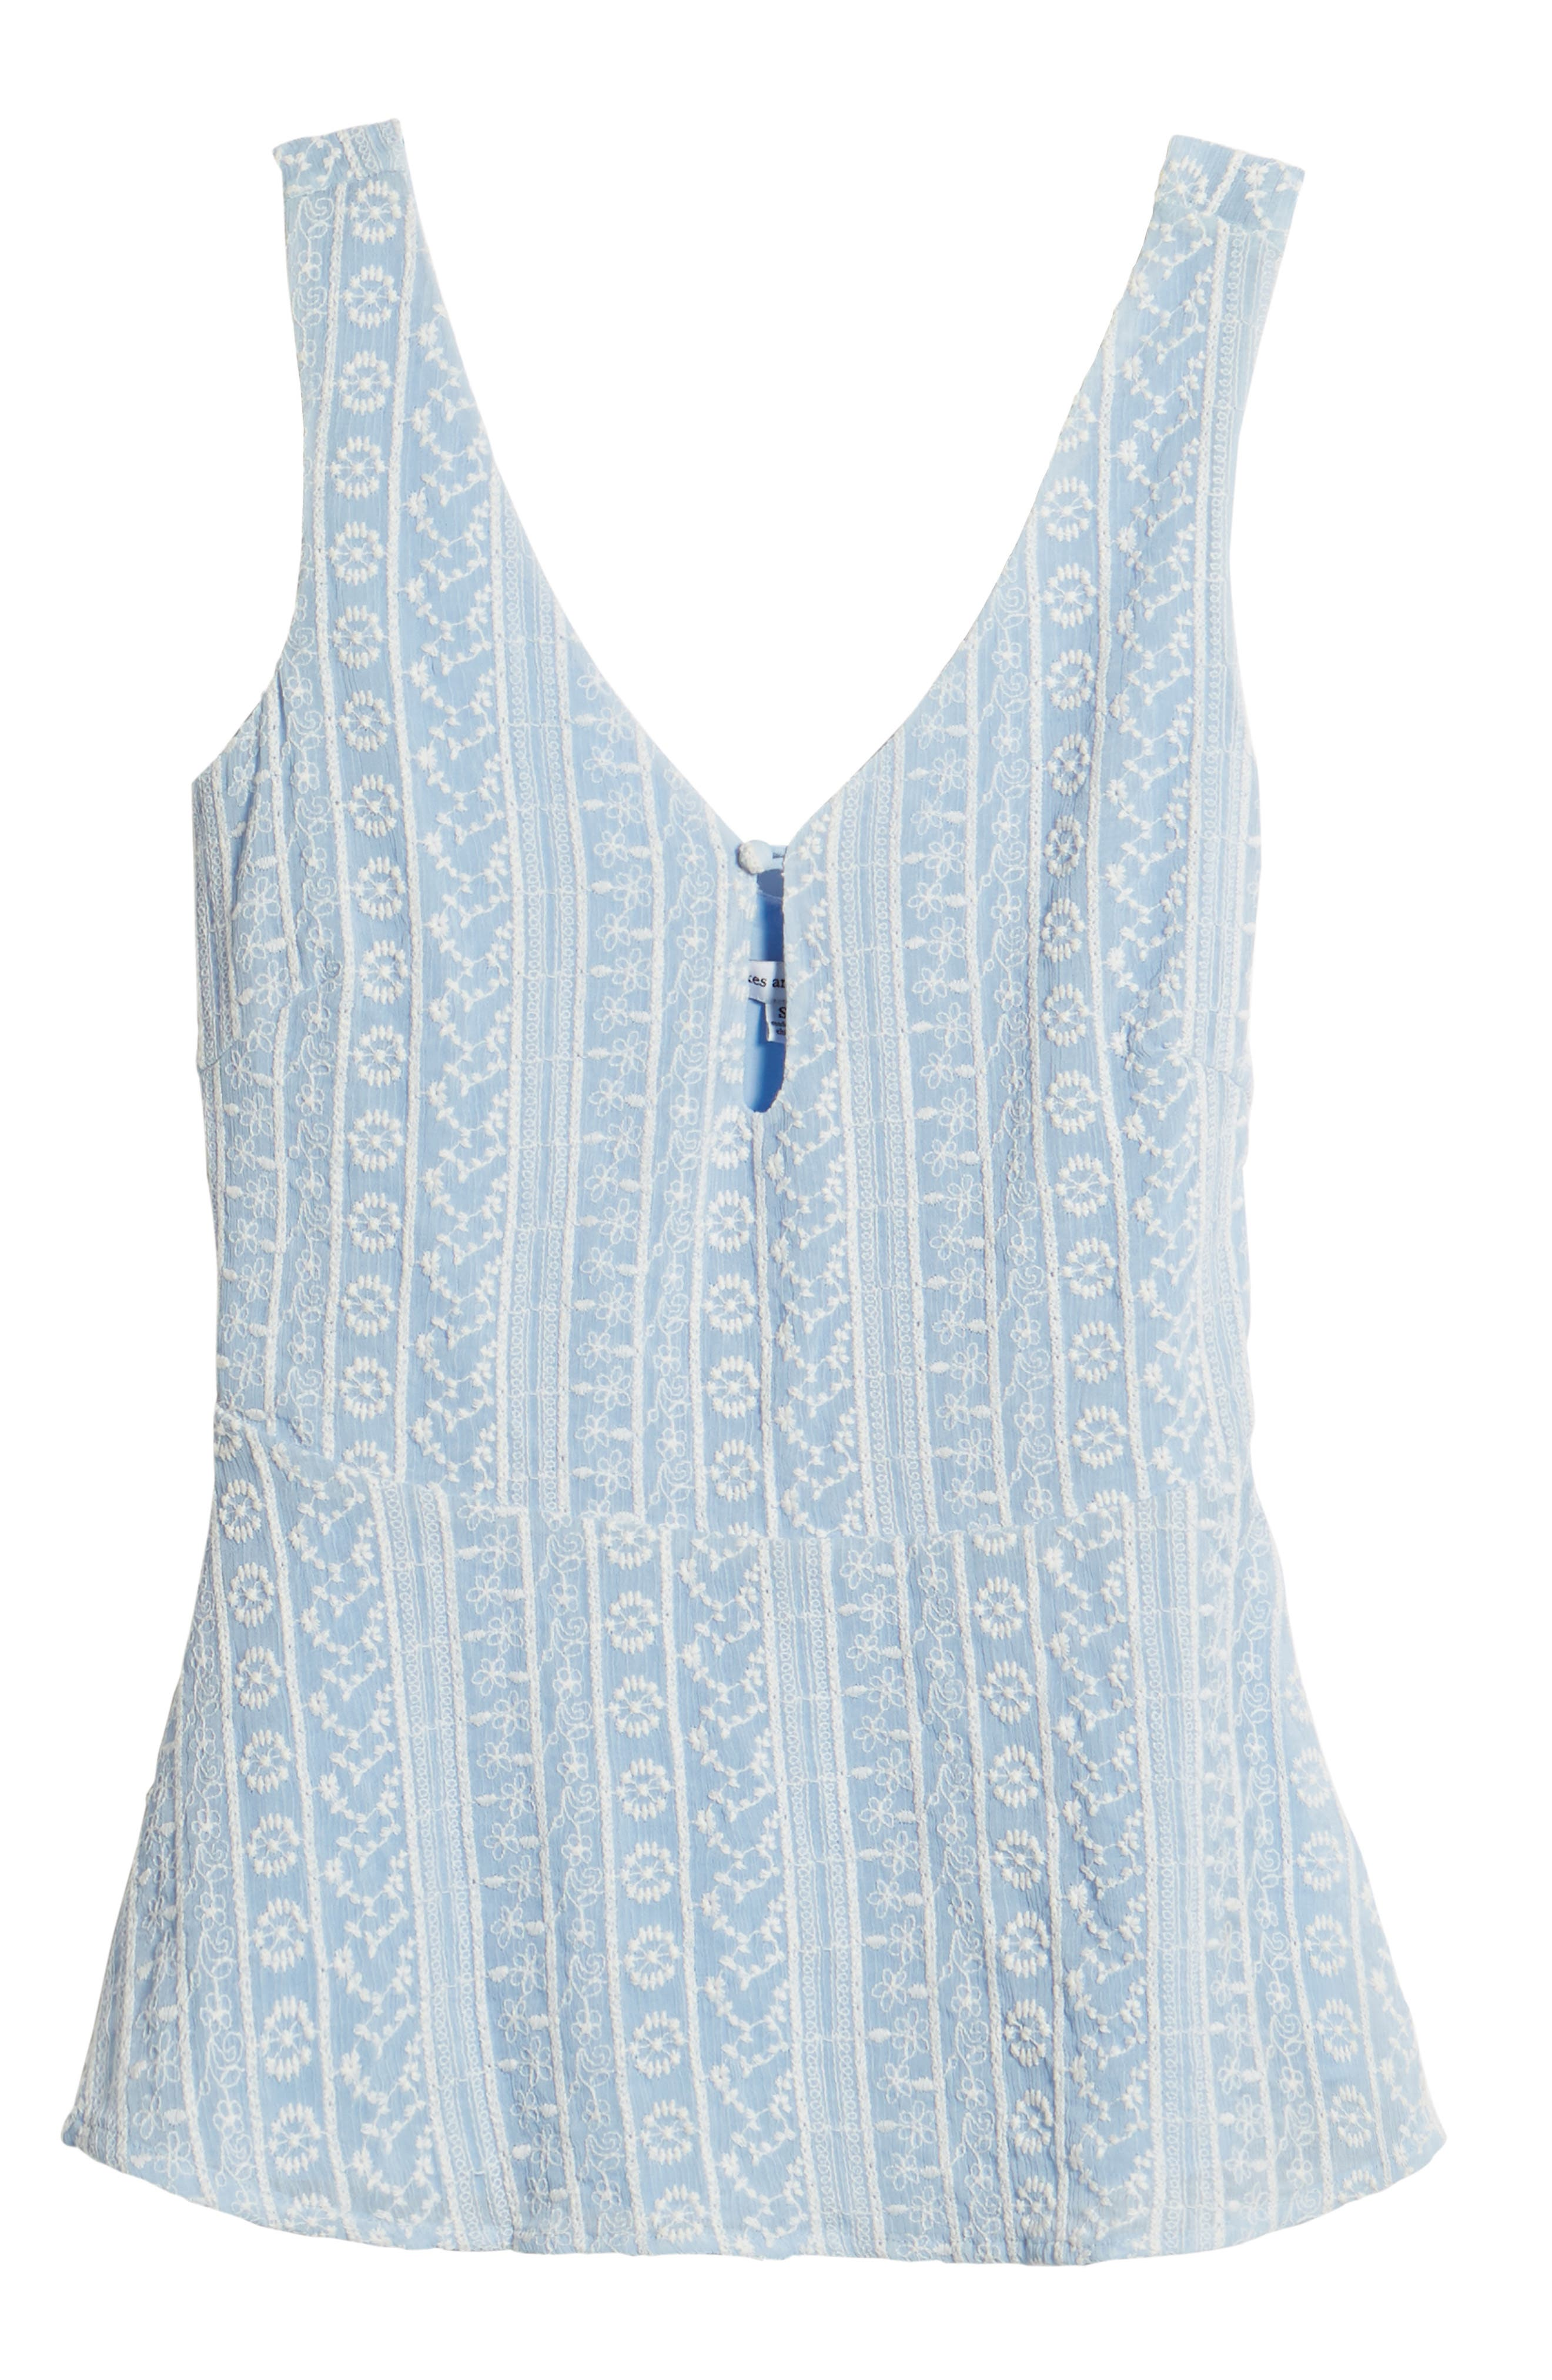 Brian Embroidered Peplum Tank,                             Alternate thumbnail 7, color,                             450